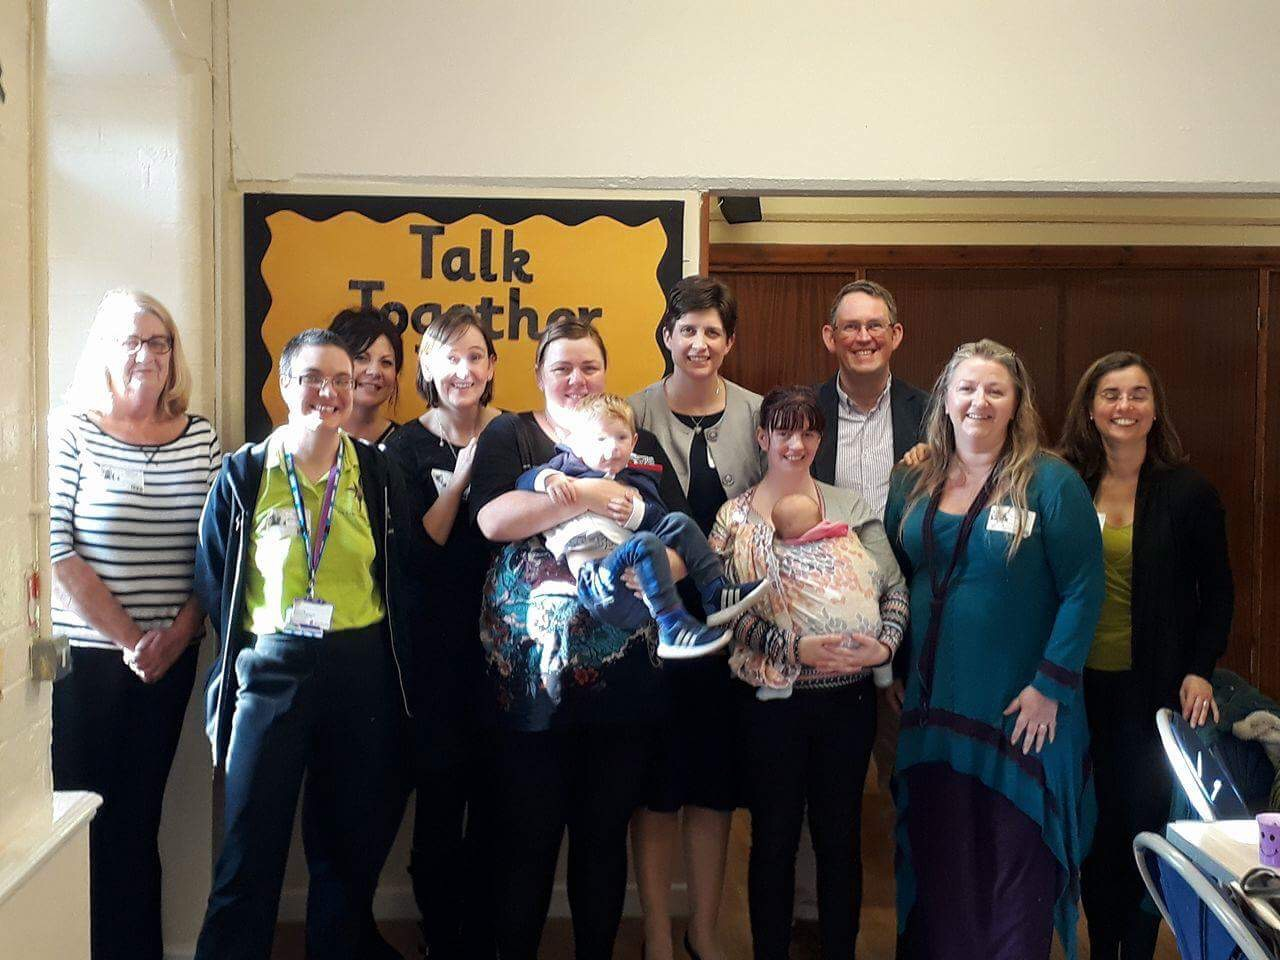 MP to visit Blackpool to highlight cuts to breastfeeding support services